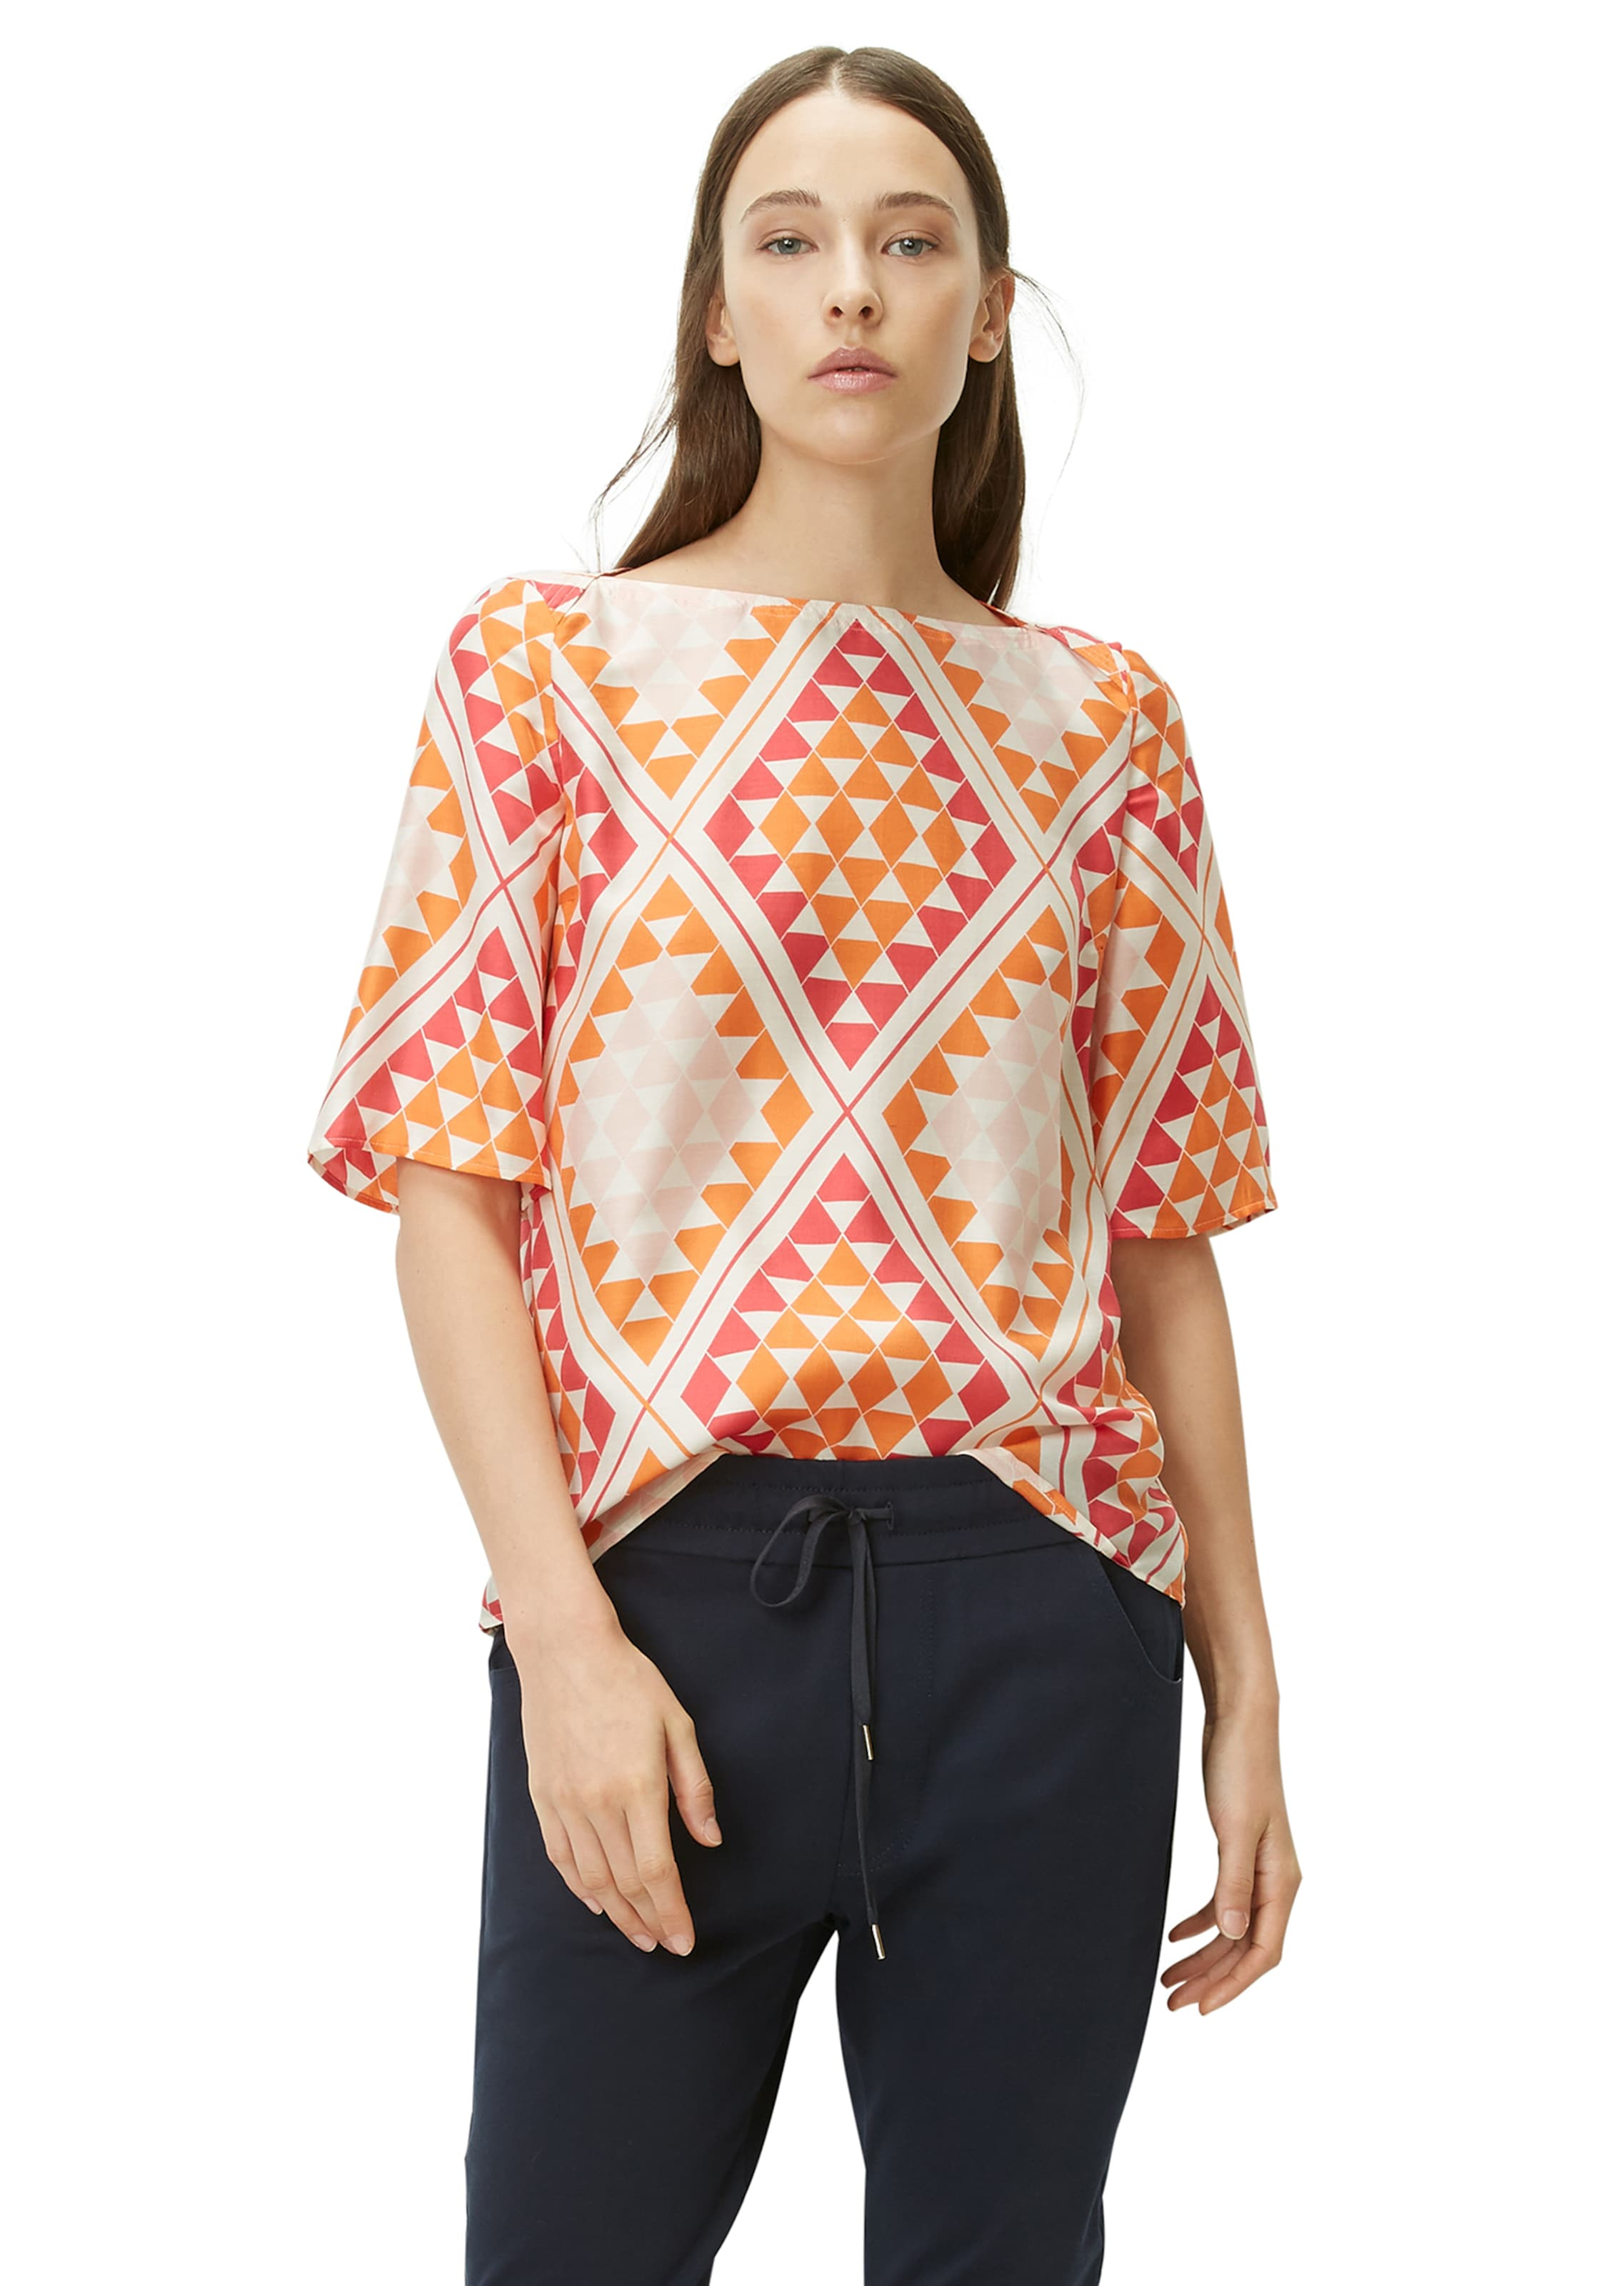 In Blusenshirt Blusenshirt Apricot O'polo In Marc O'polo Apricot Marc Marc O'polo Blusenshirt bf6gyvY7